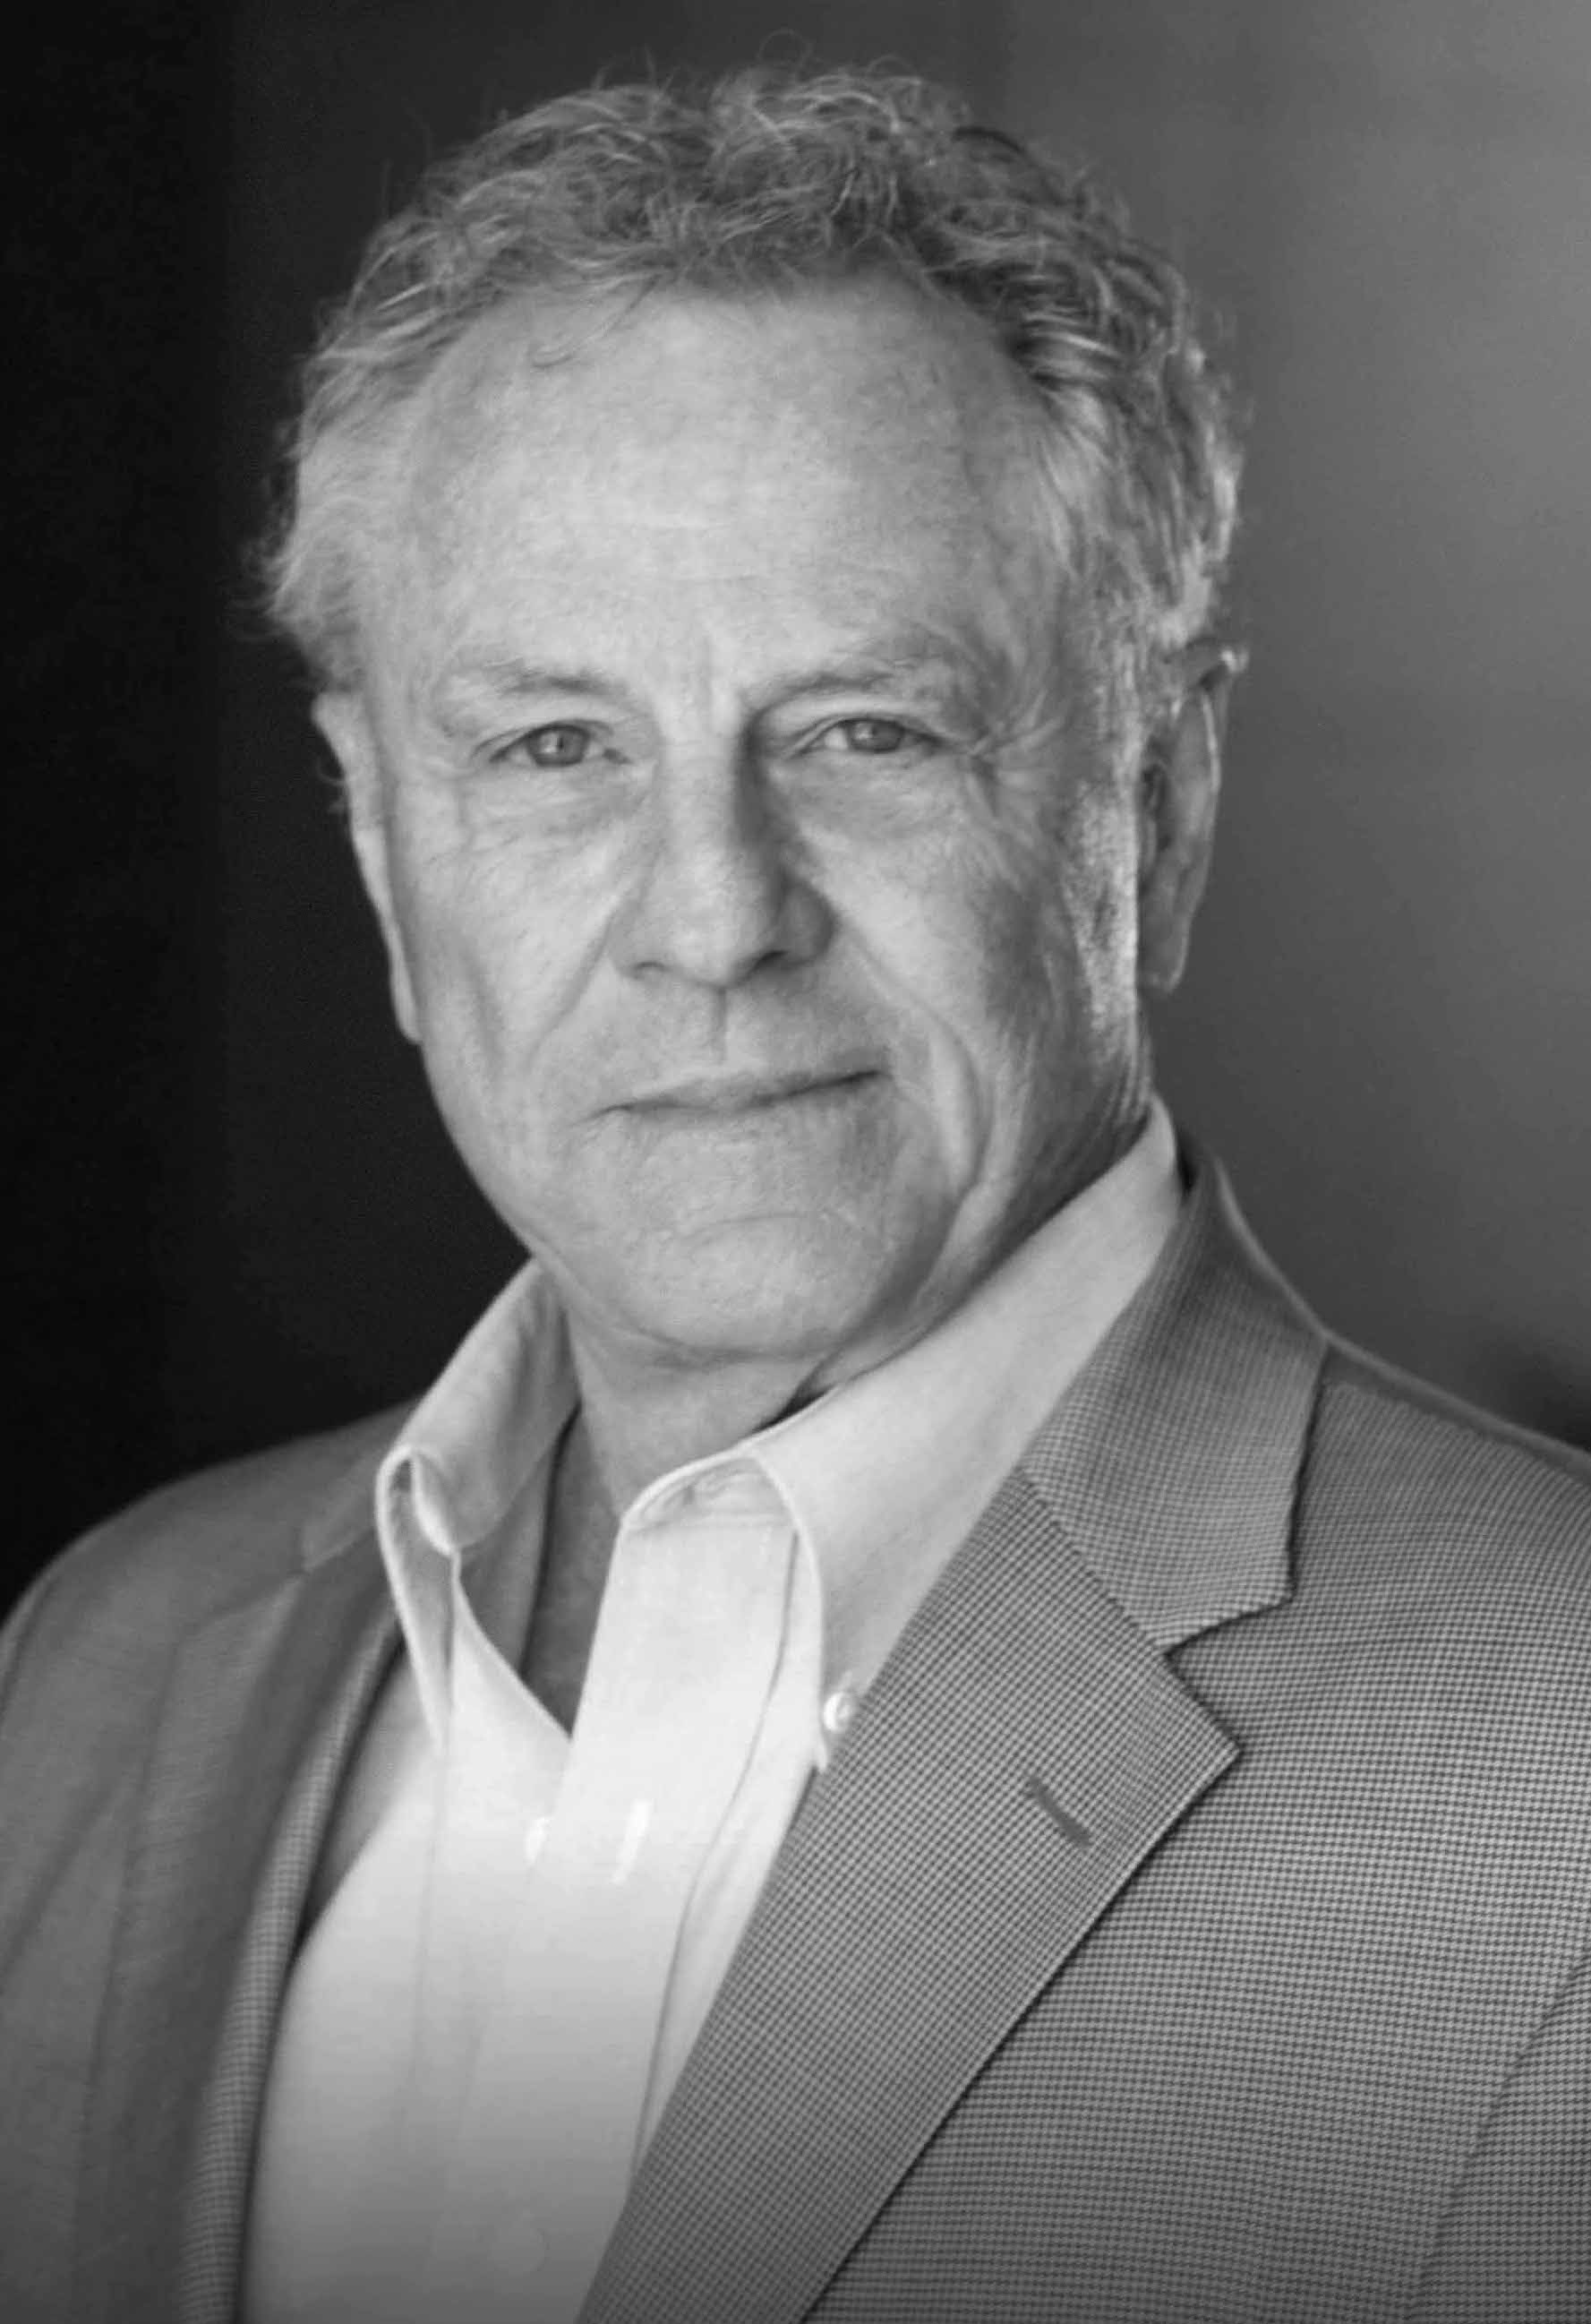 Morris Seligman Dees, Jr. is the co-founder and chief trial counsel for the Southern Poverty Law Center, and a former market engineer for book publishing